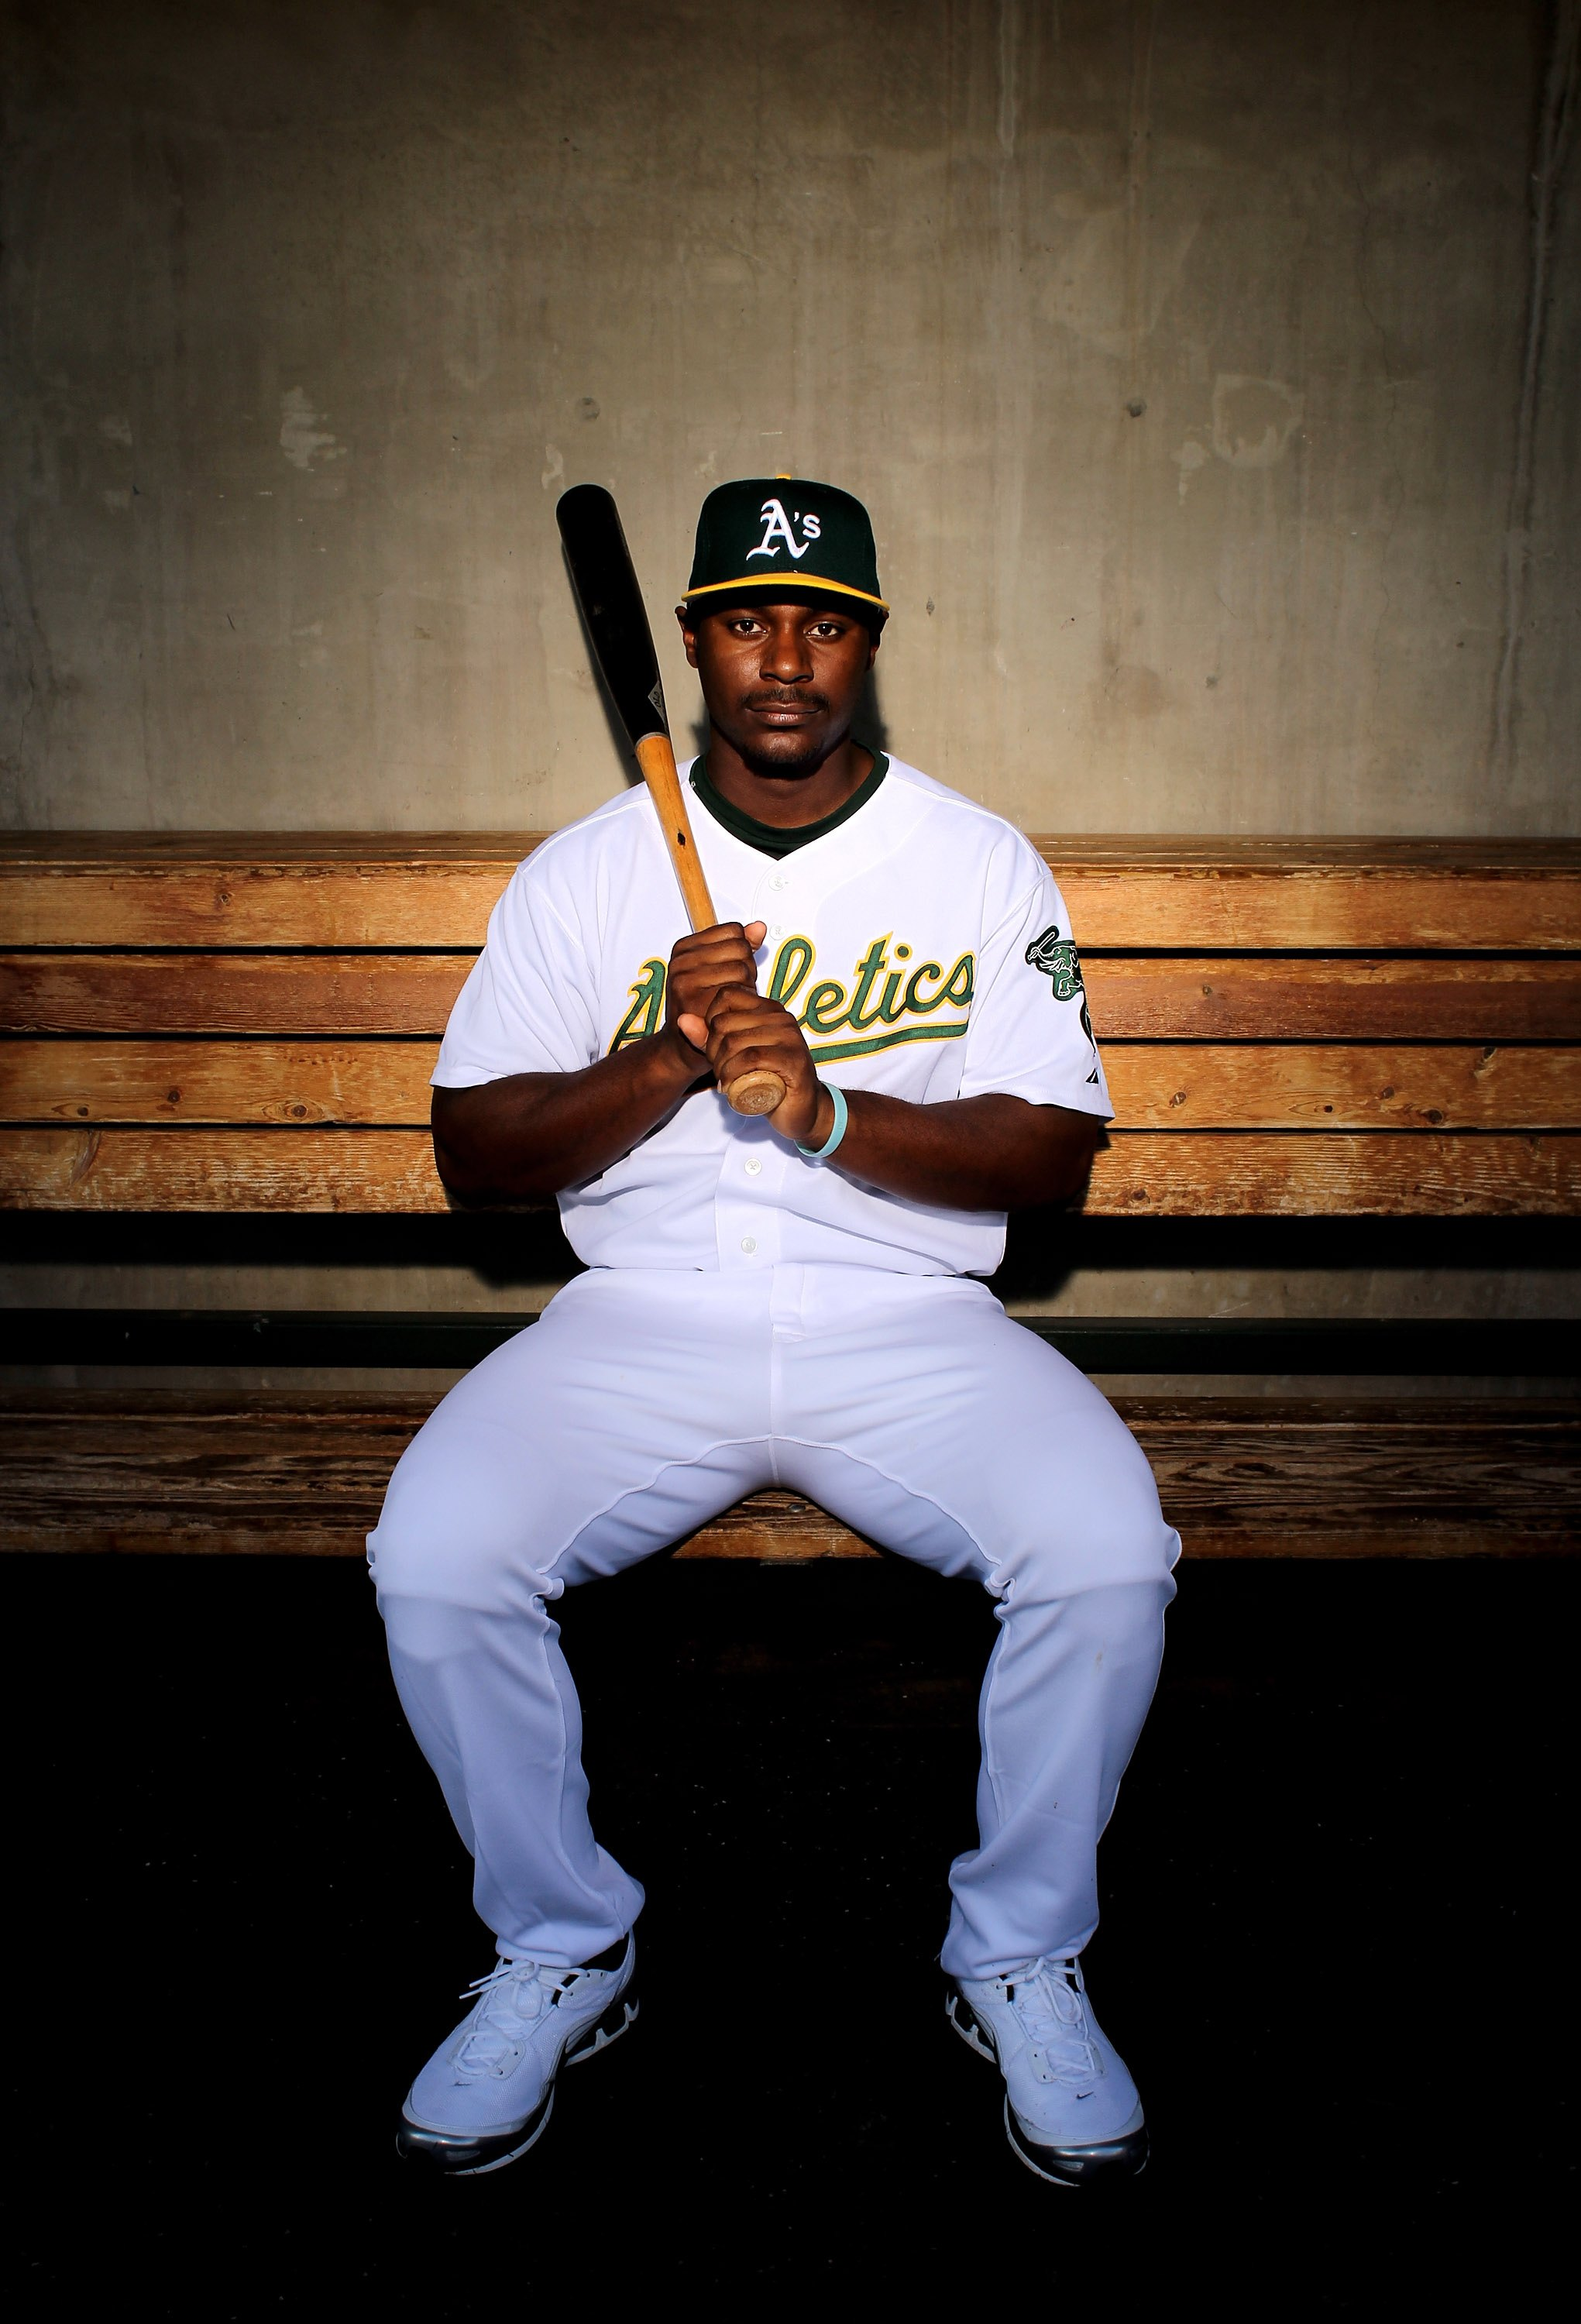 PHOENIX - MARCH 01:  Chris Carter of the Oakland Athletics poses during photo media day at the Athletics spring training complex on March 1, 2010 in Phoenix, Arizona.  (Photo by Ezra Shaw/Getty Images)